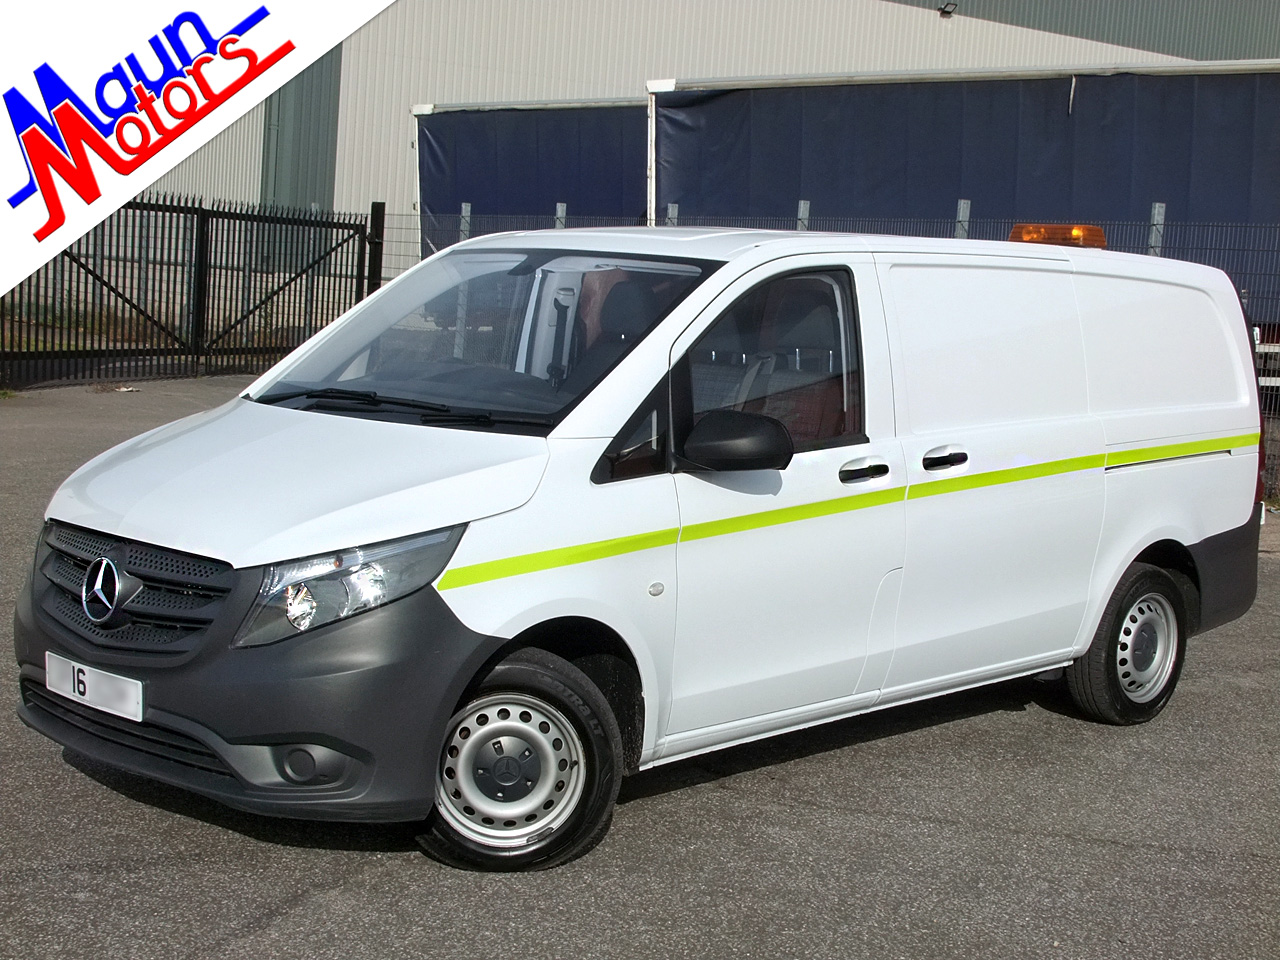 Mercedes-Benz Vito used vans for sale